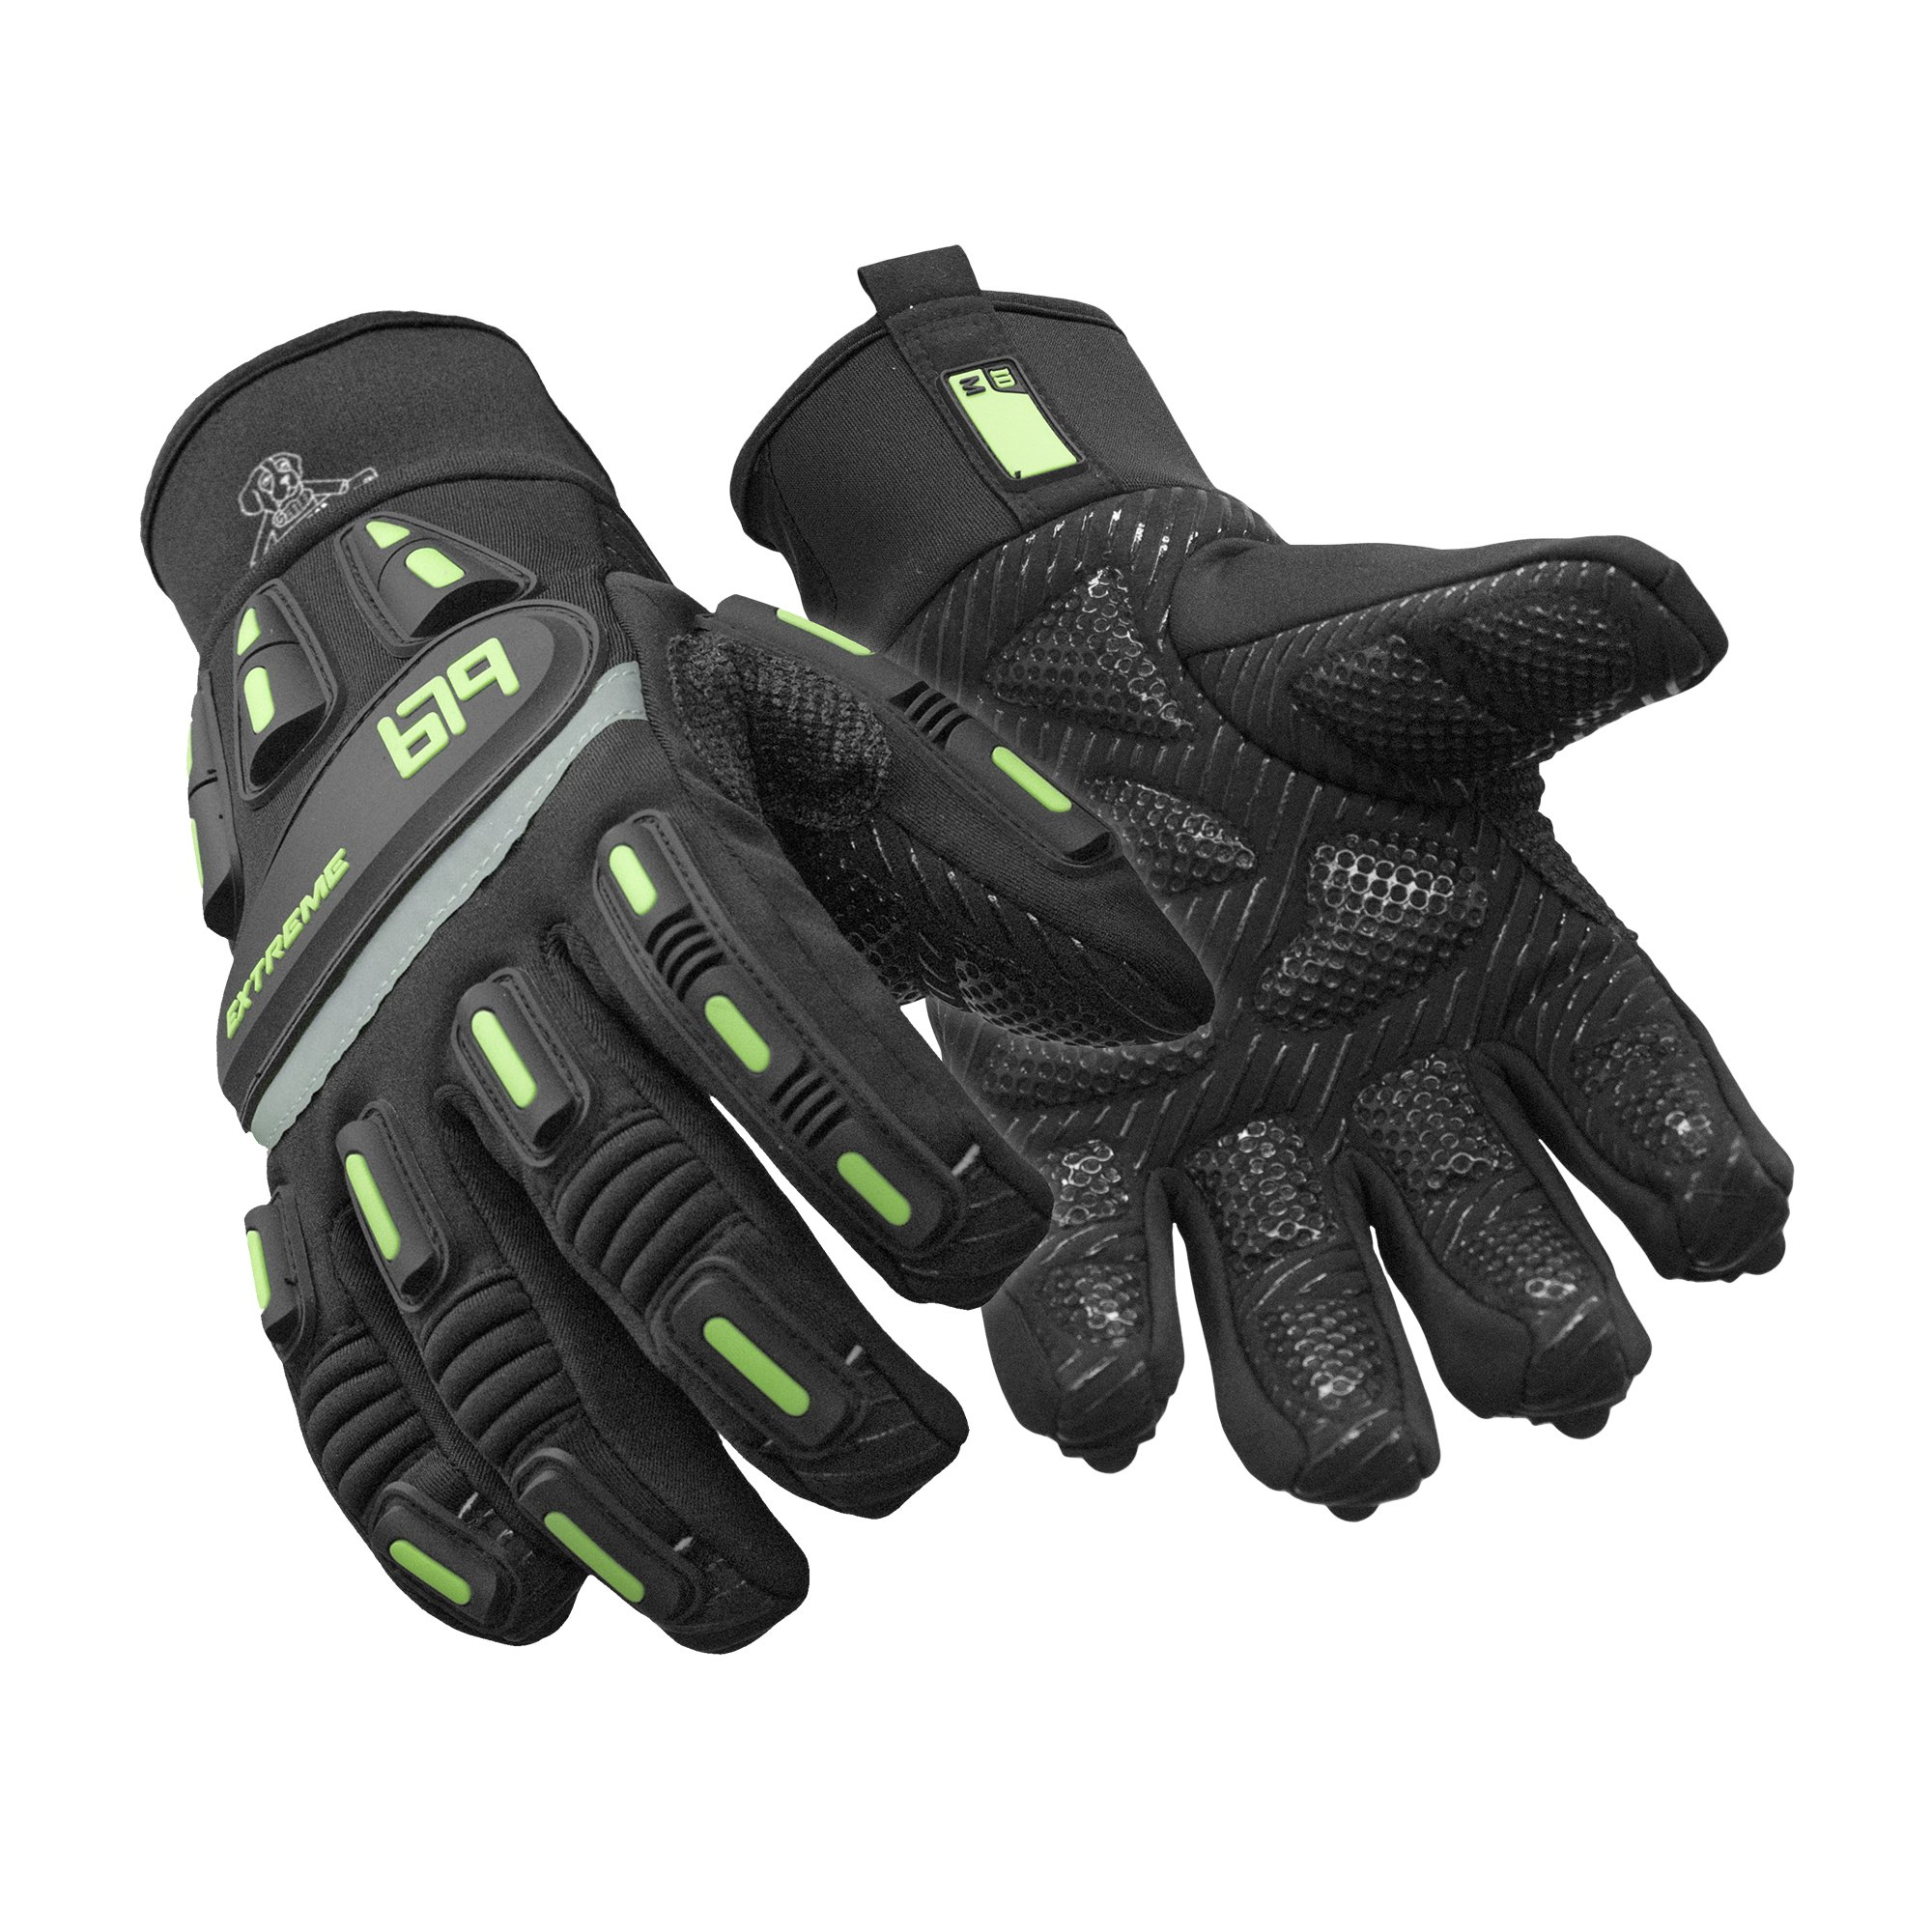 RefrigiWear Insulated Extreme Freezer Gloves with Grip Palm & Impact Protection (Black, 2XL) by RefrigiWear